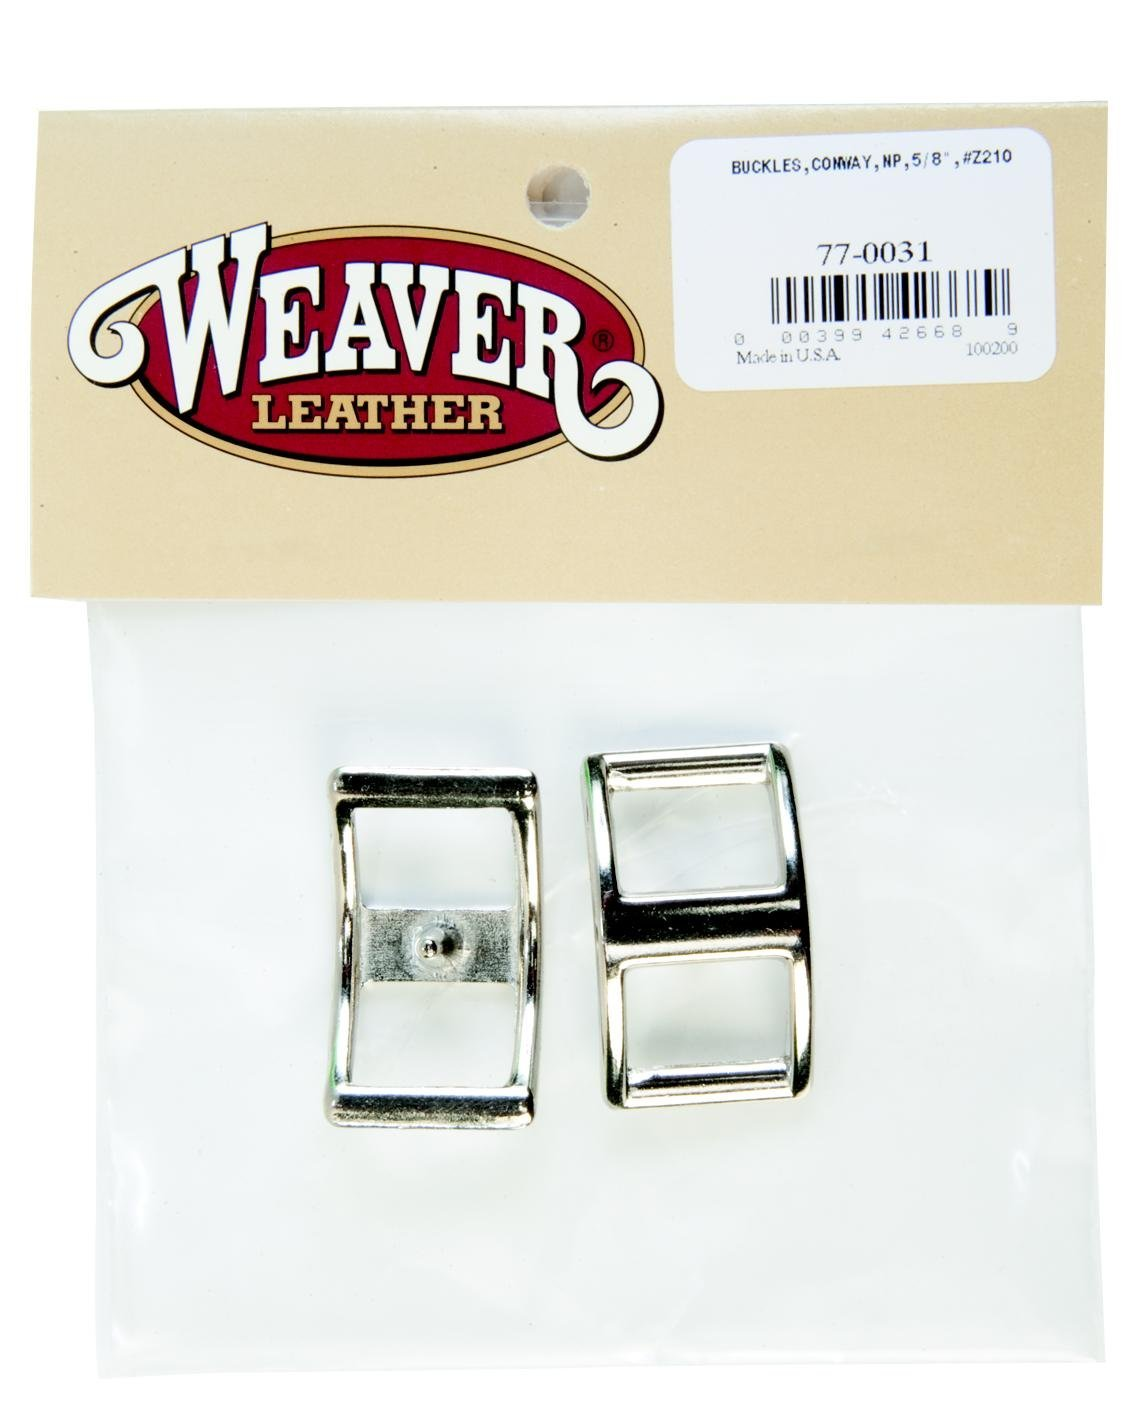 "Weaver Leather BUCKLES,CONWAY,NP,5/8"",#Z210"